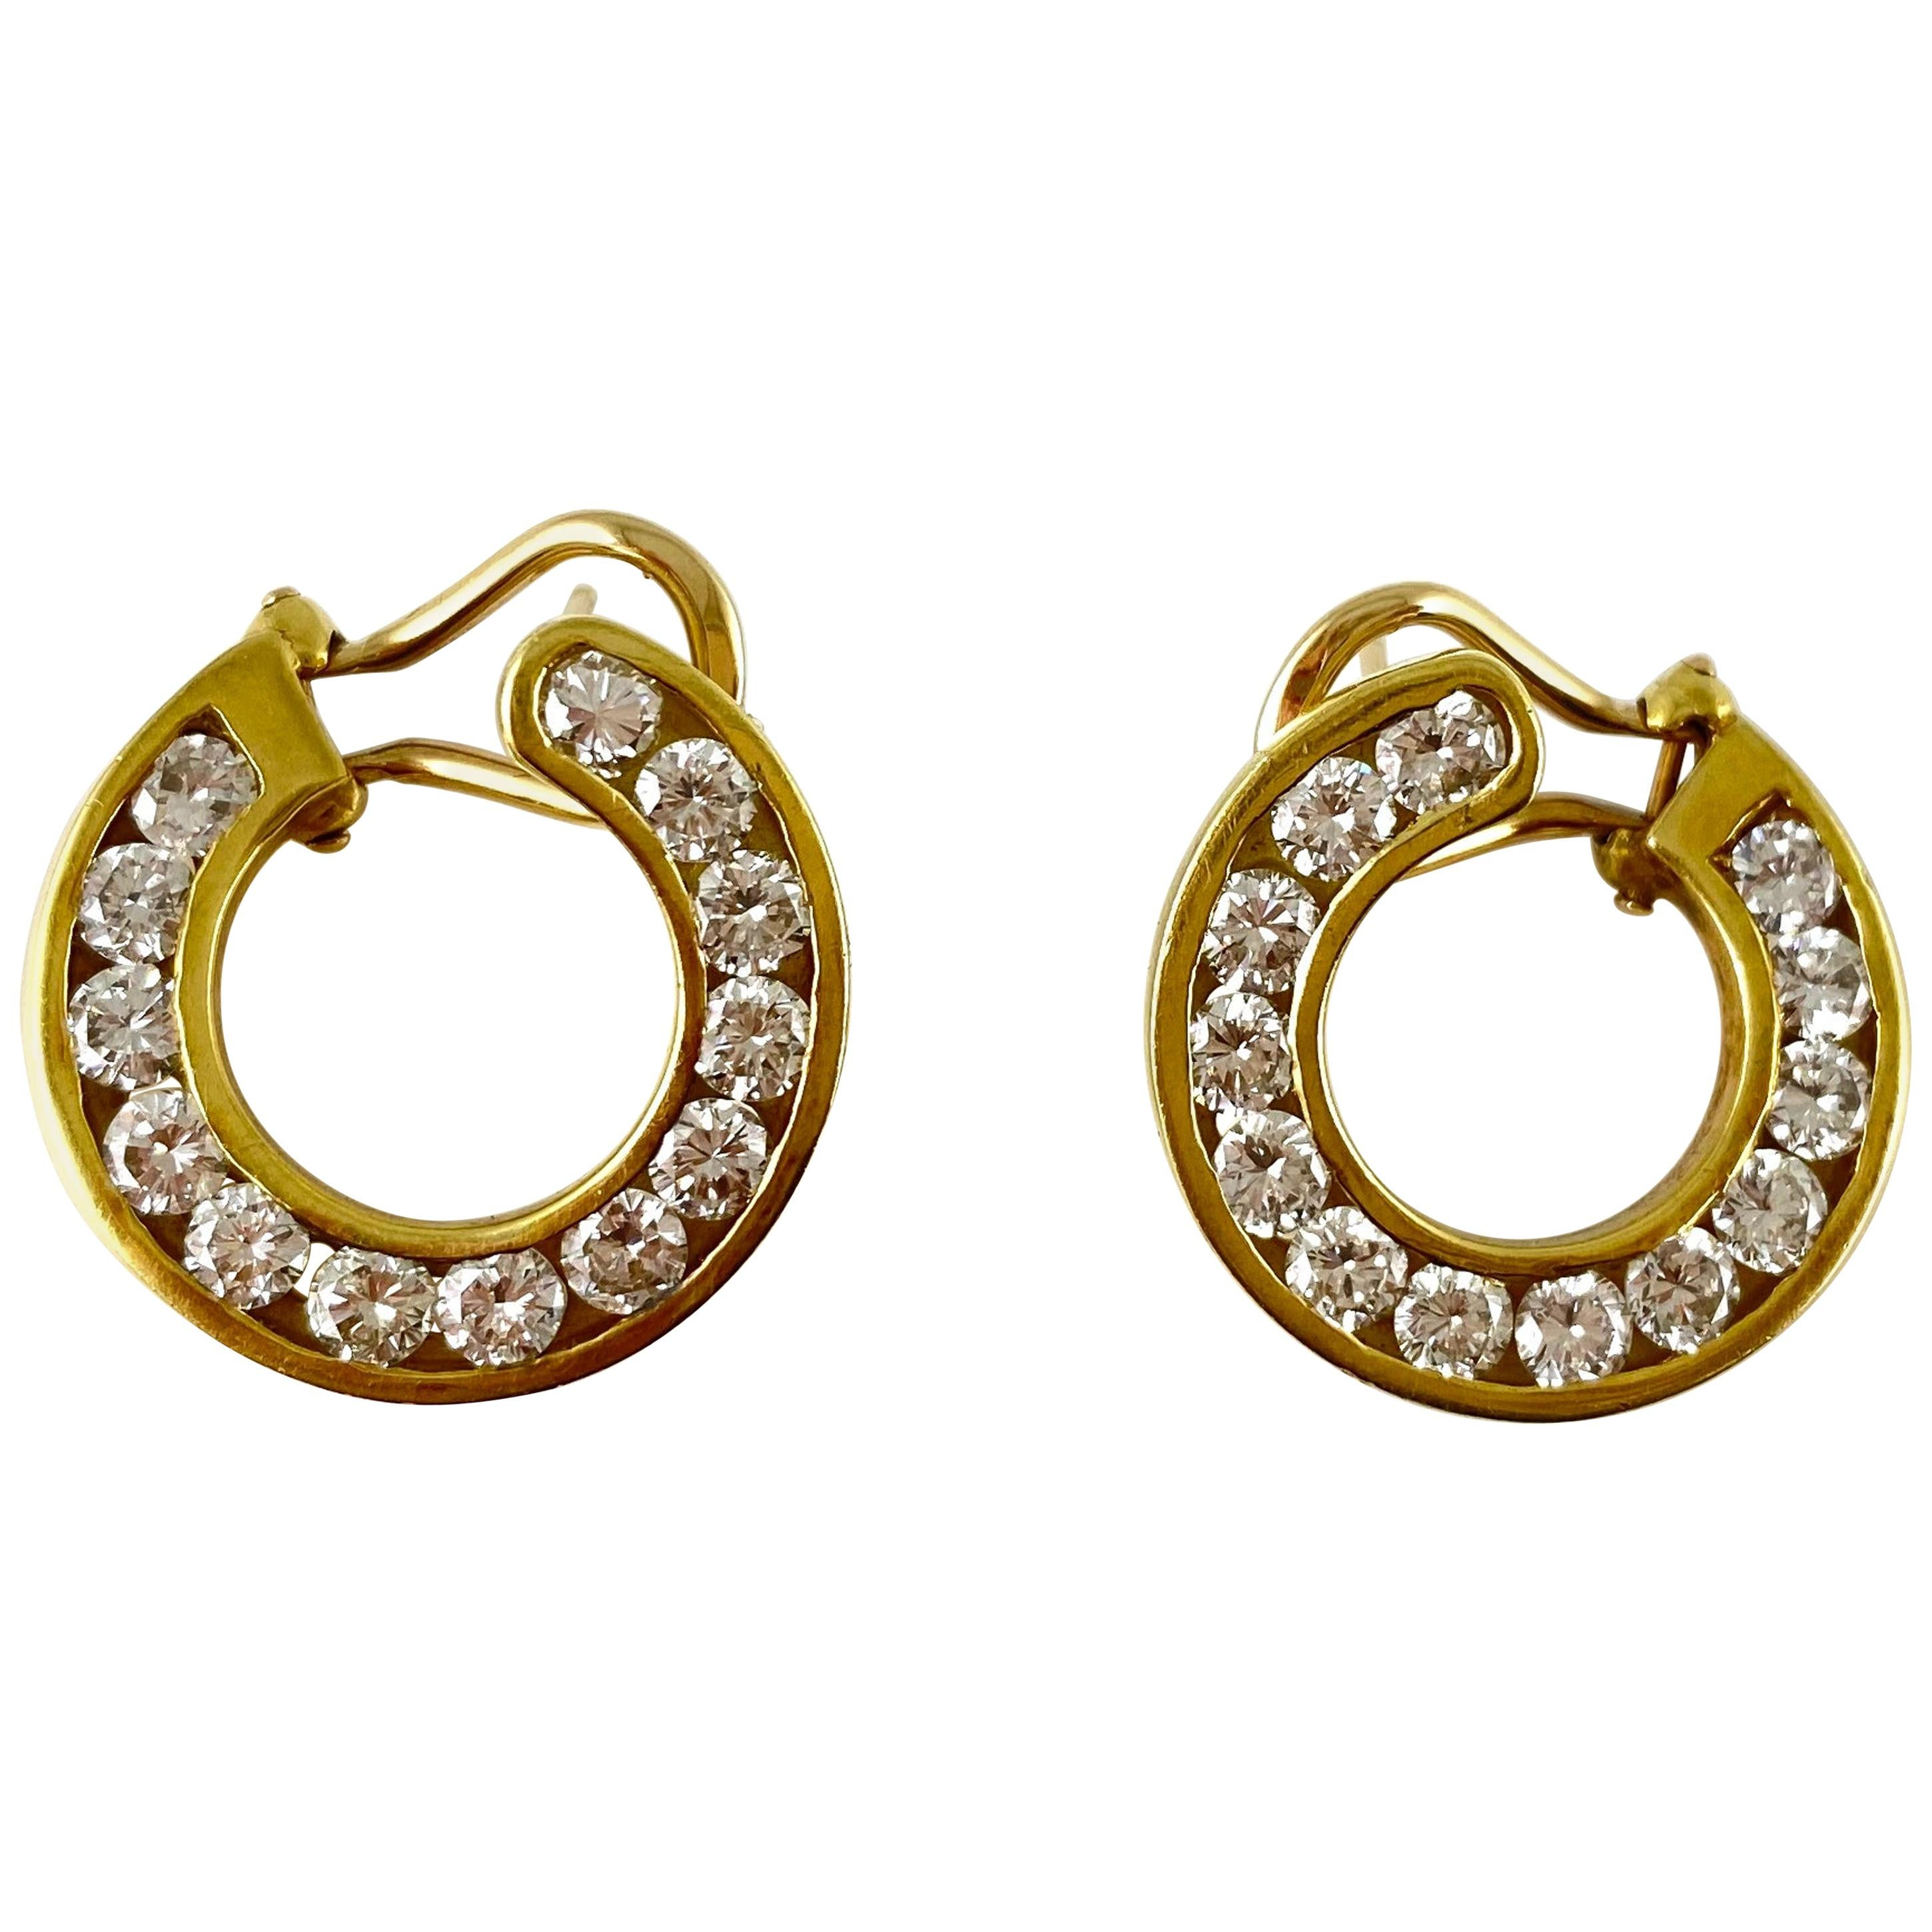 1980s Small Round Hoop Earring with Round Diamonds